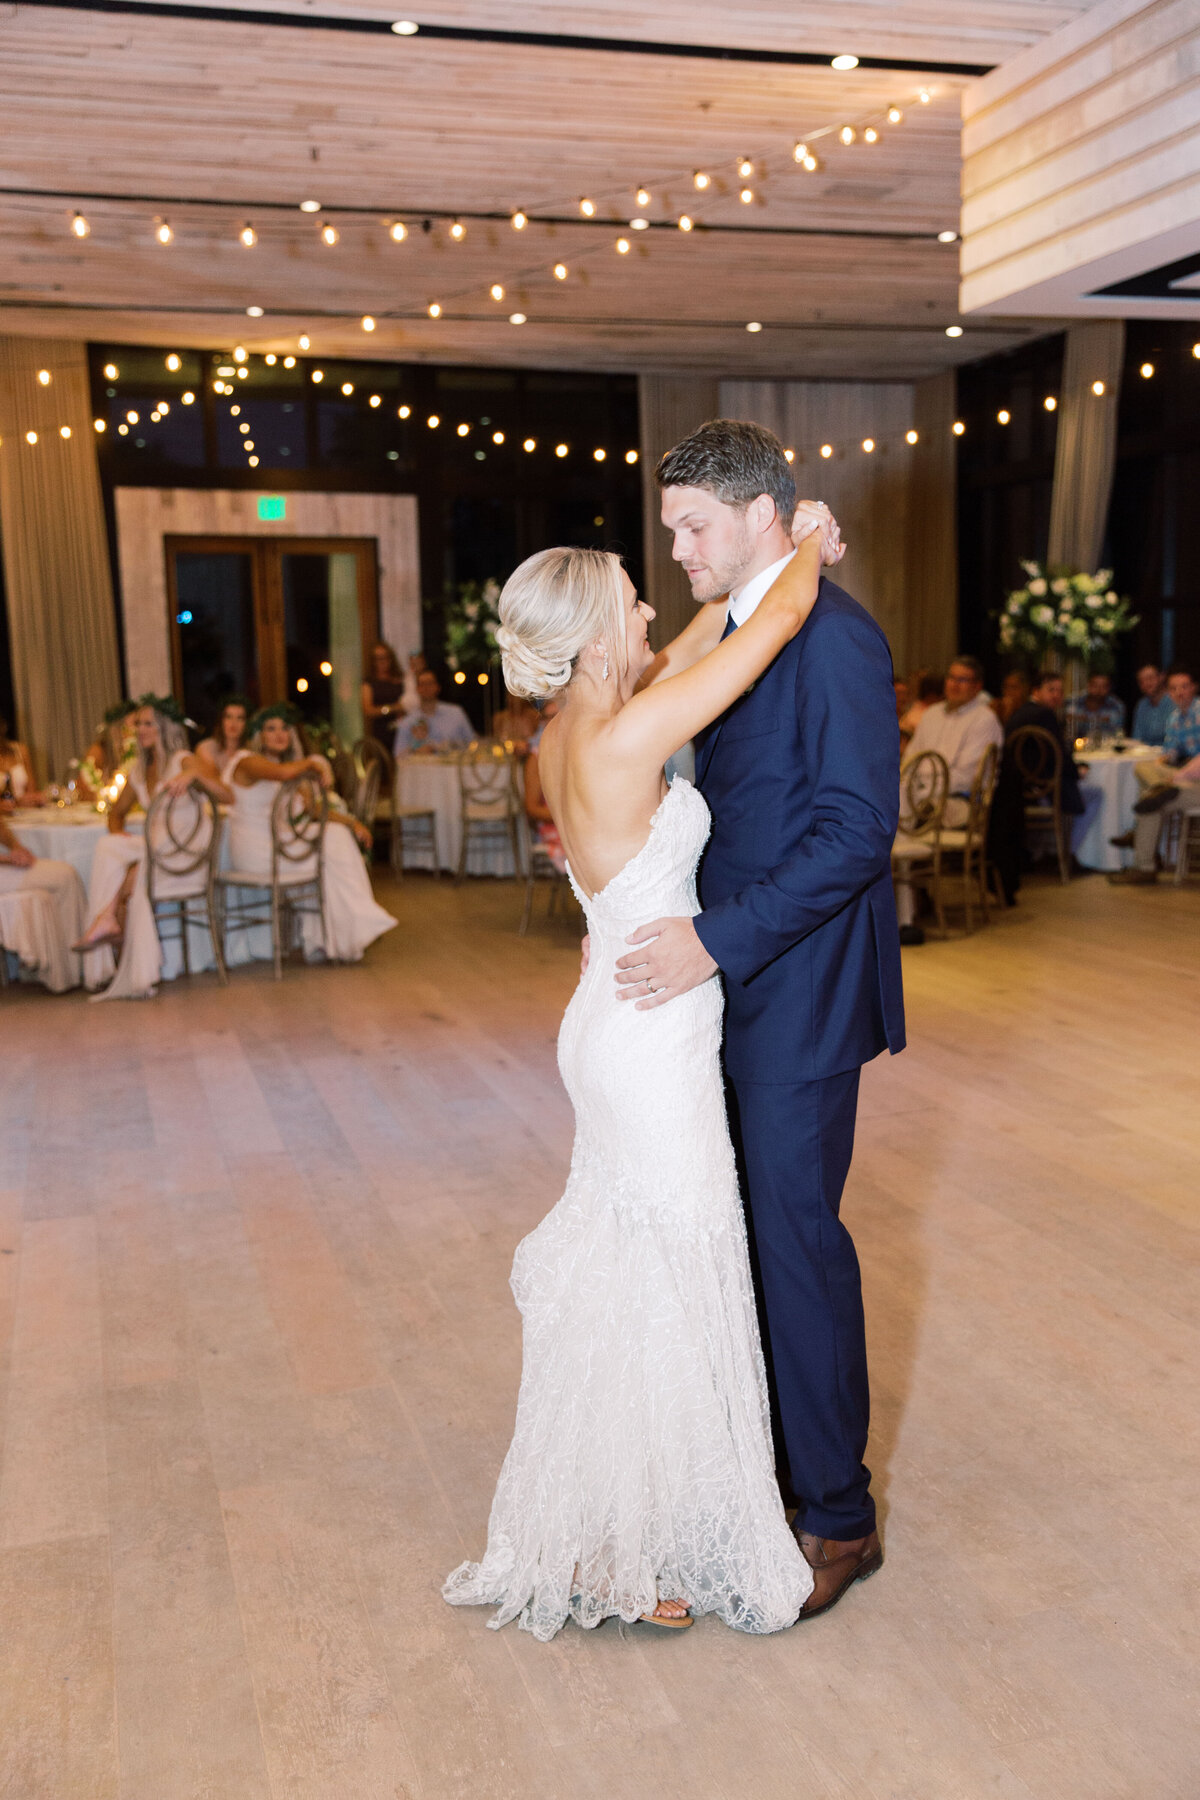 Melton_Wedding__Middleton_Place_Plantation_Charleston_South_Carolina_Jacksonville_Florida_Devon_Donnahoo_Photography__0944